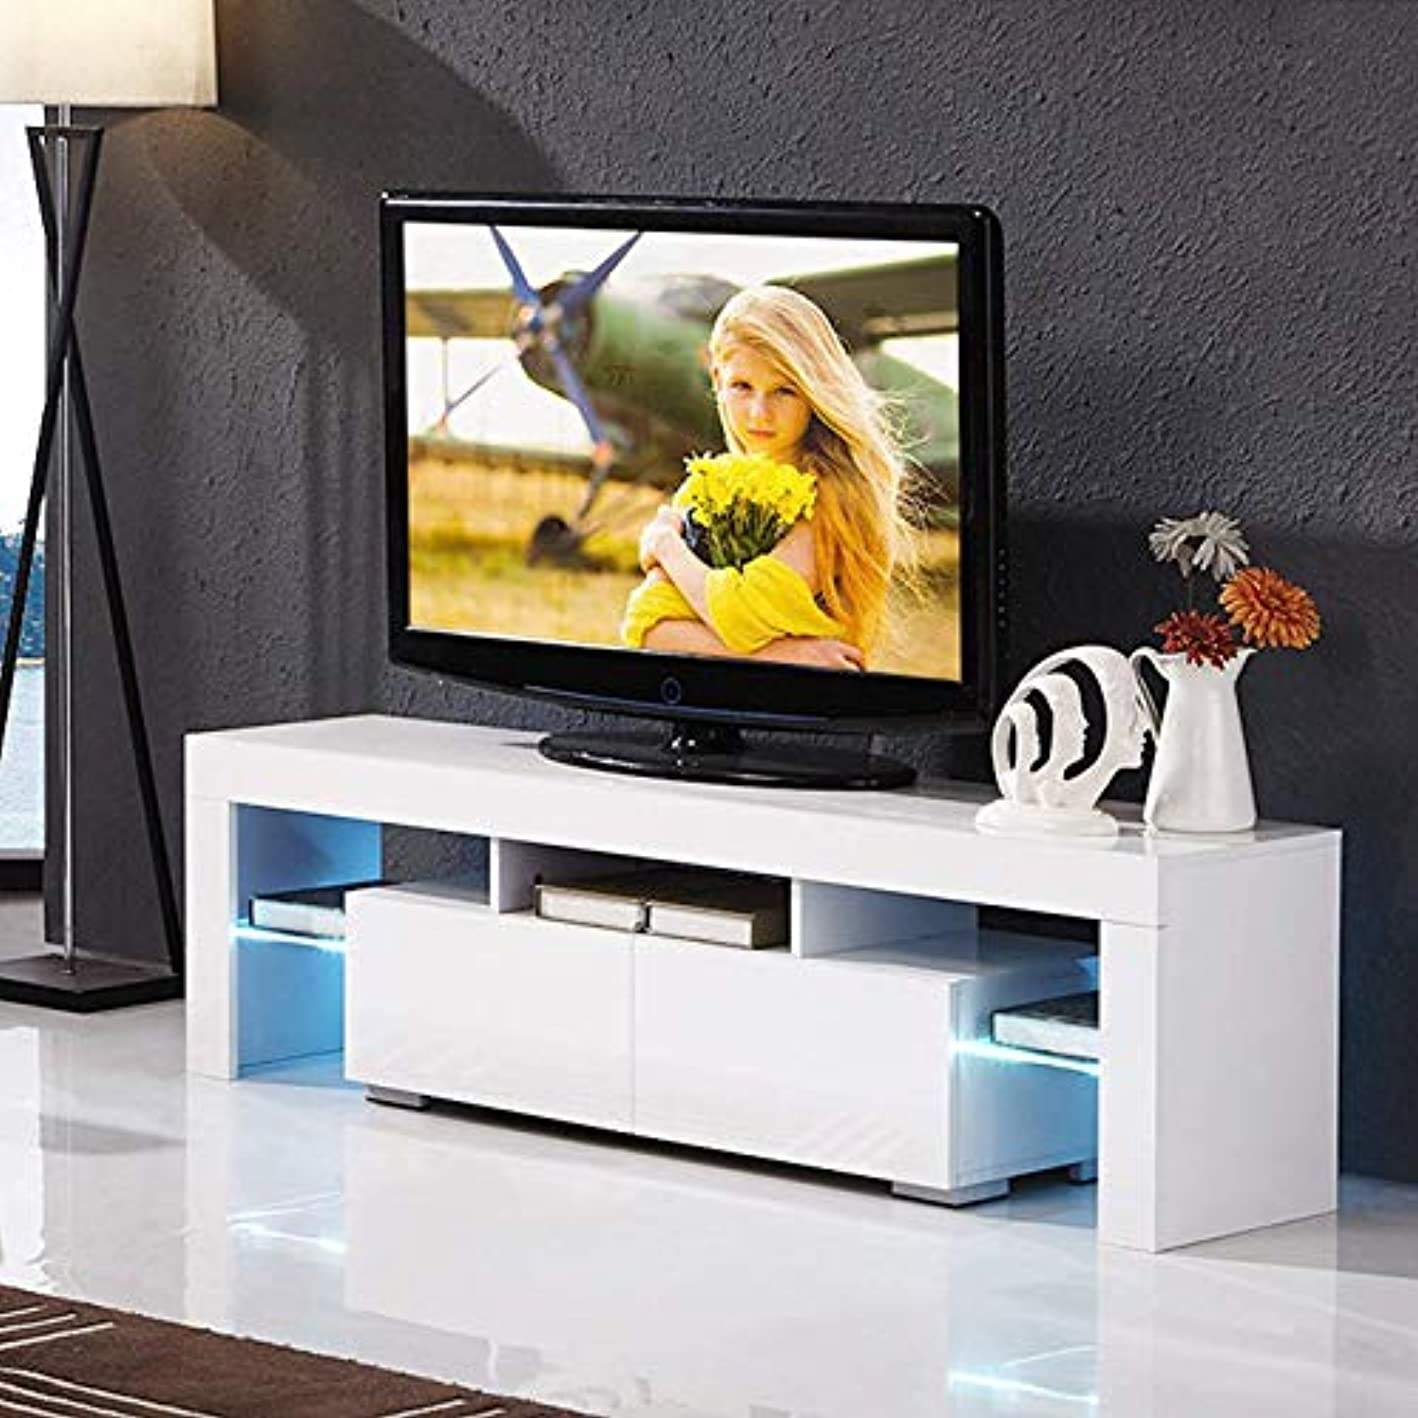 Mecor High Gloss TV Stand with LED Lights, 63 Inch White TV Console Cabinet with Storage and 2 Drawers Living Room Modern Furniture (White)